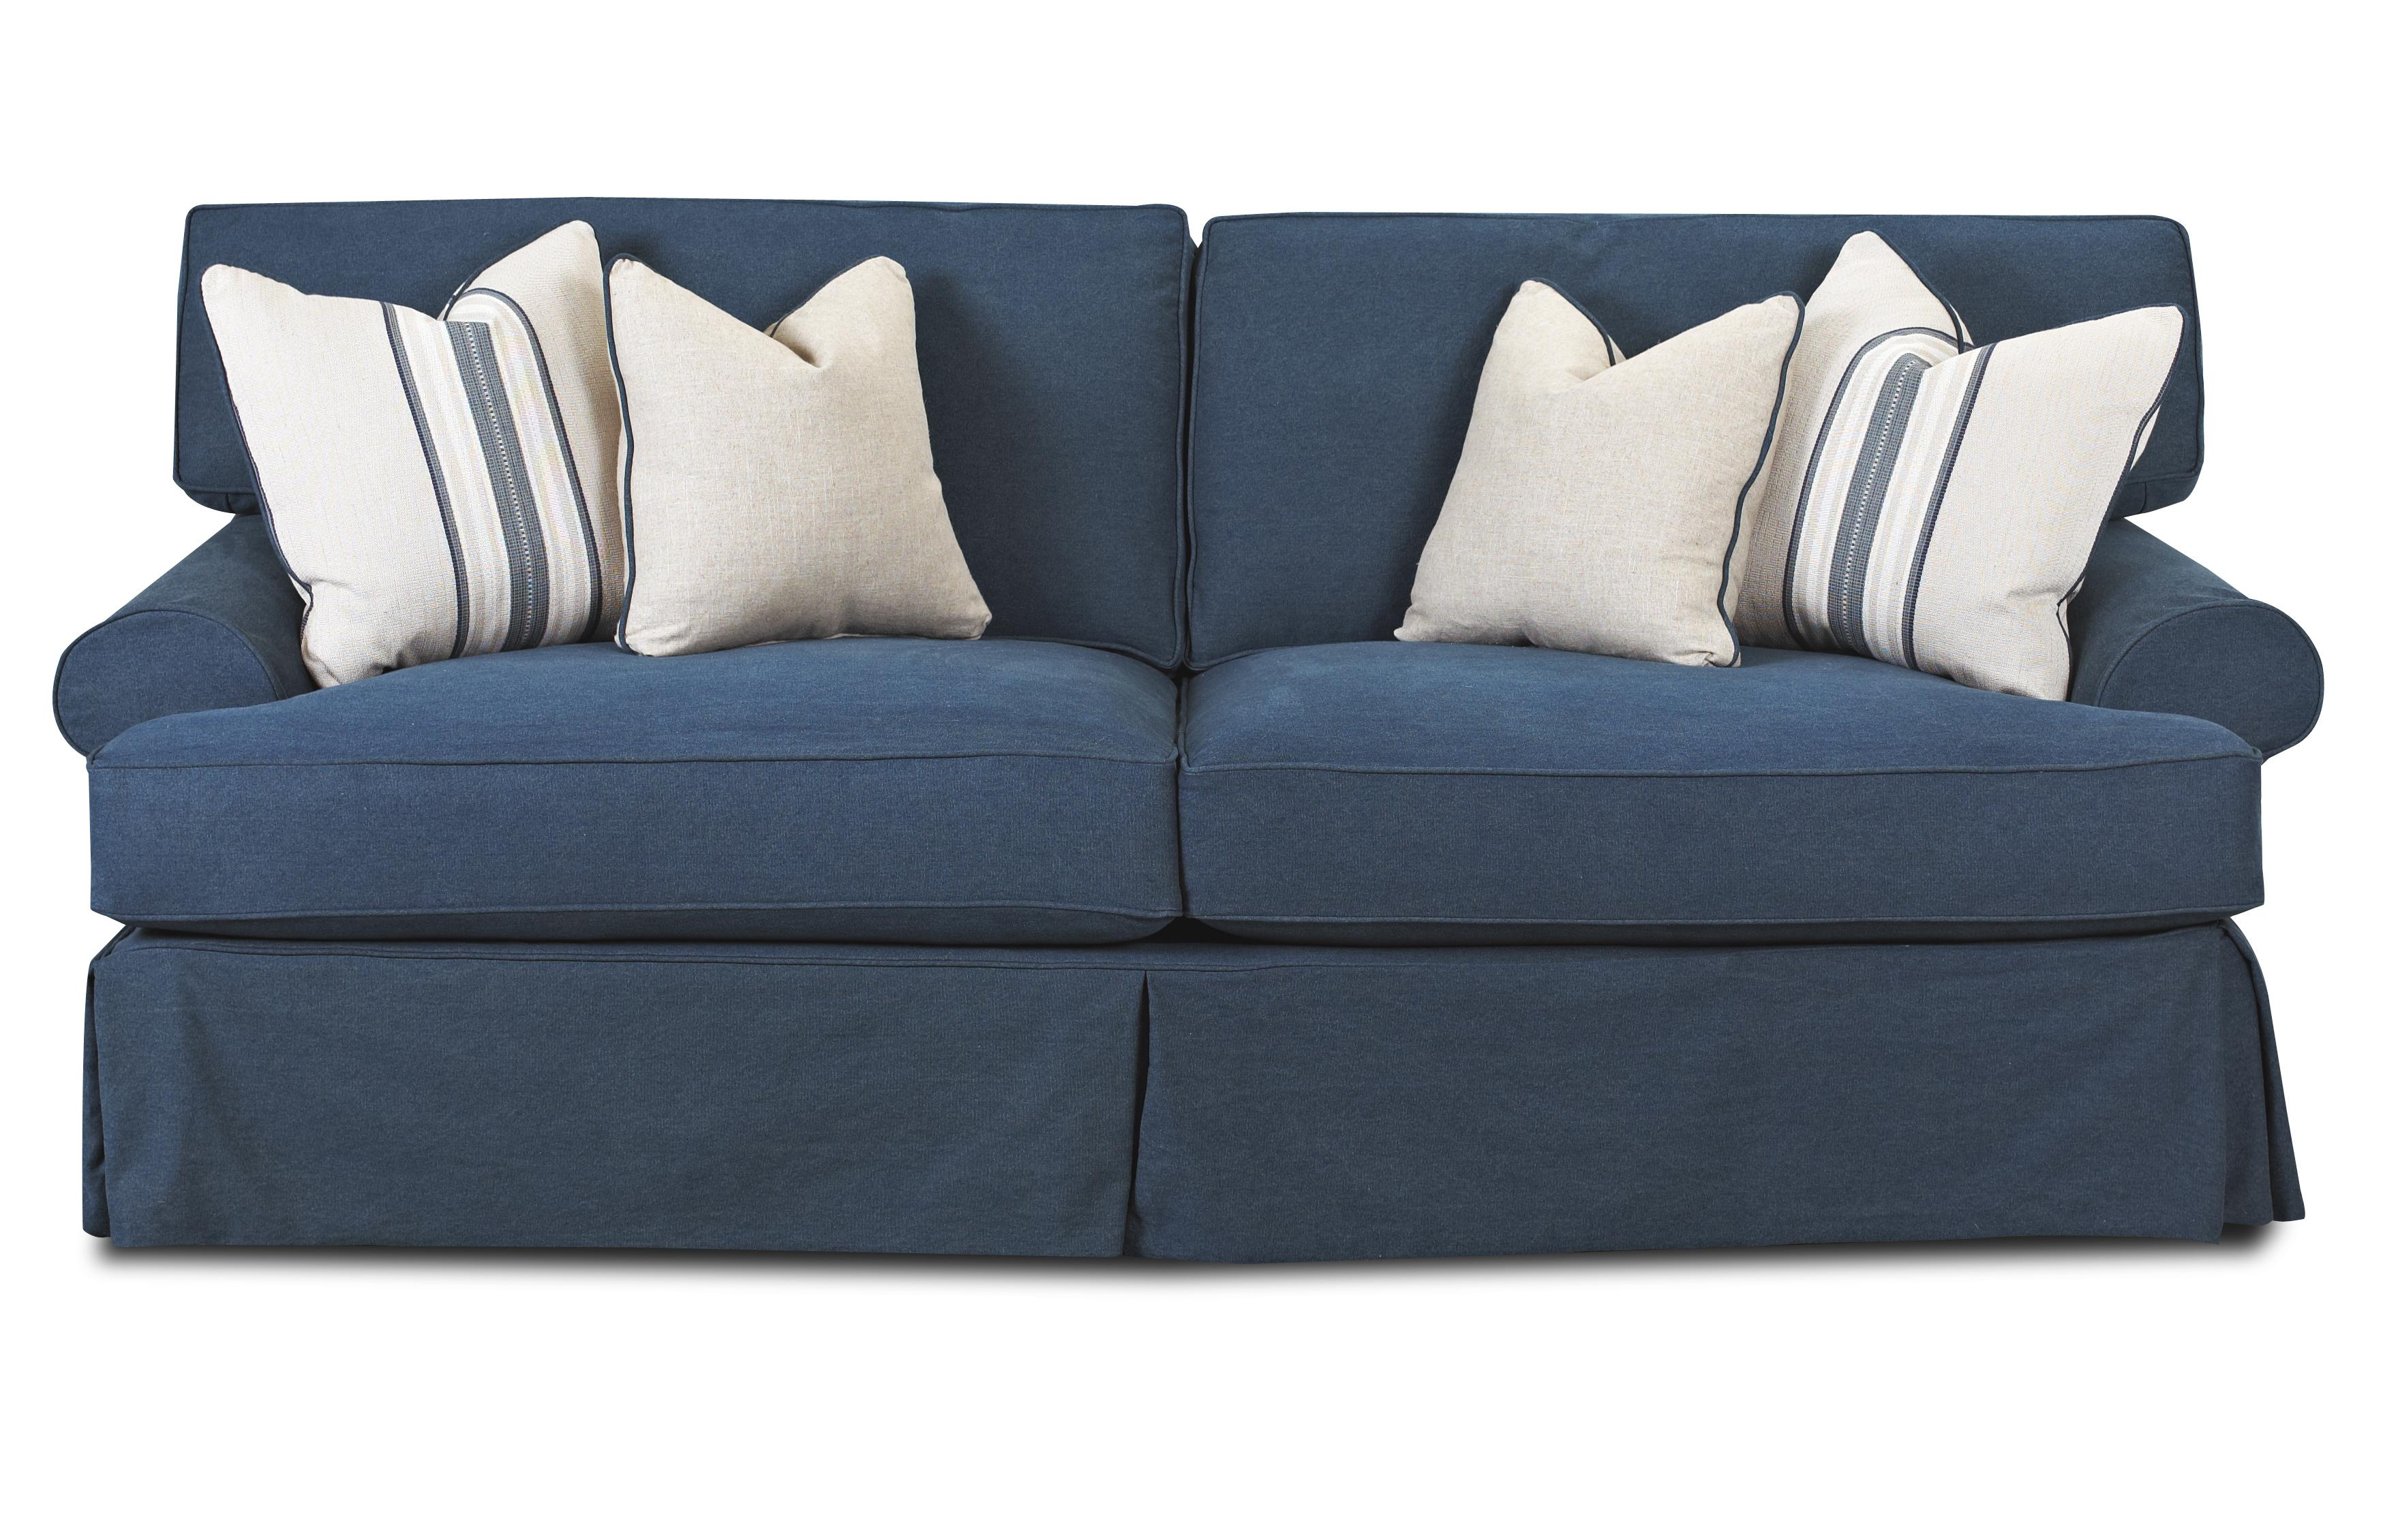 sofa with blend down cushions by klaussner wolf and gardiner